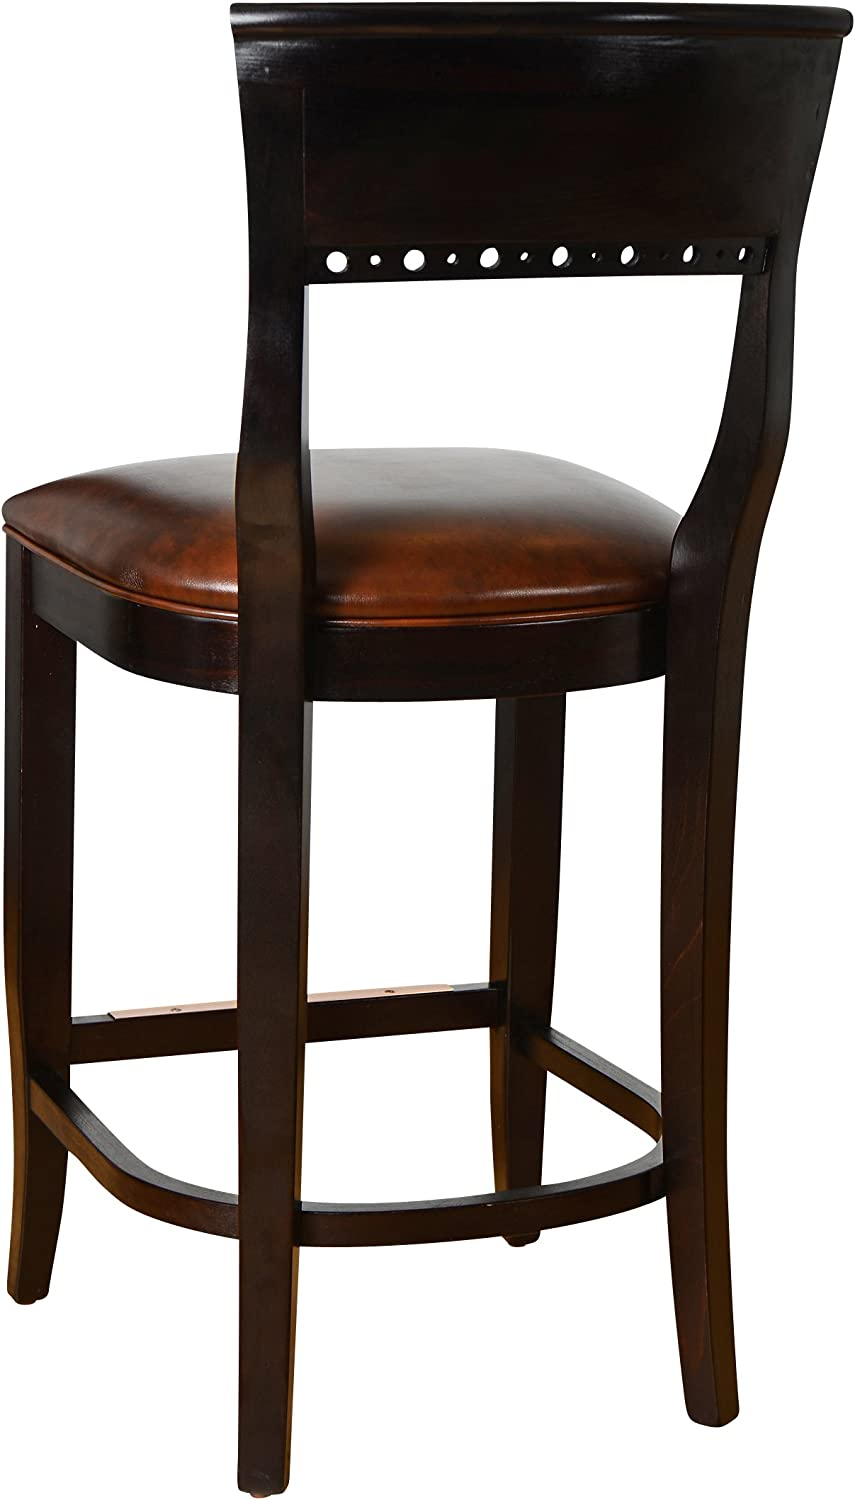 Wooden Counter and Bar Stool- Fully Assembled Solid Beech Wood Chair with Padded Faux Leahter Seat and Sturdy Wenge Back for Kitchen, Home or Commercial – BSD-6B24-WG by Beechwood Mountain